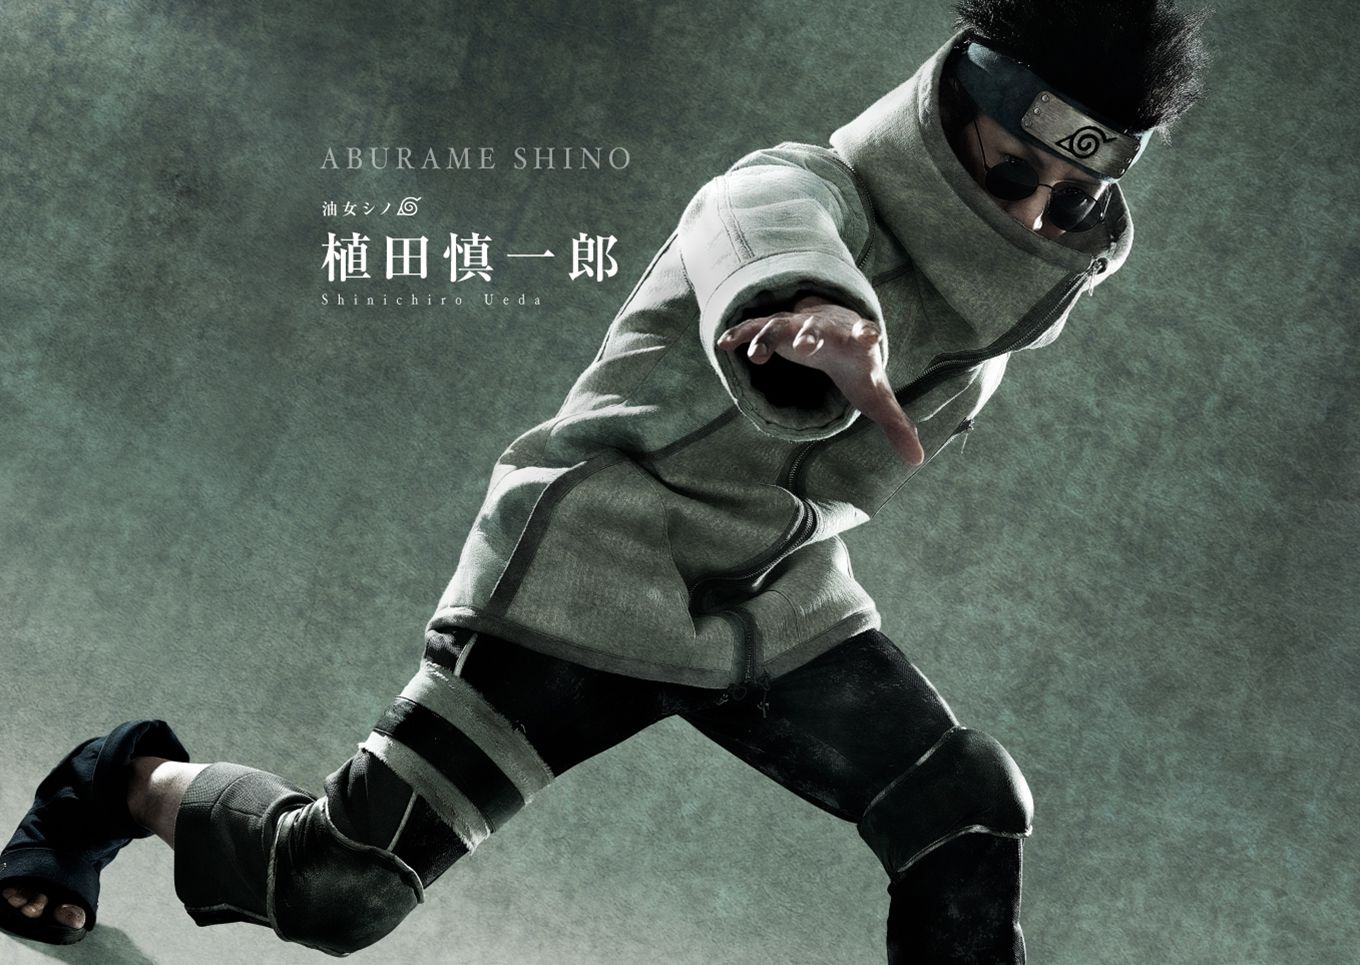 Naruto - live action film - Aburame Shino